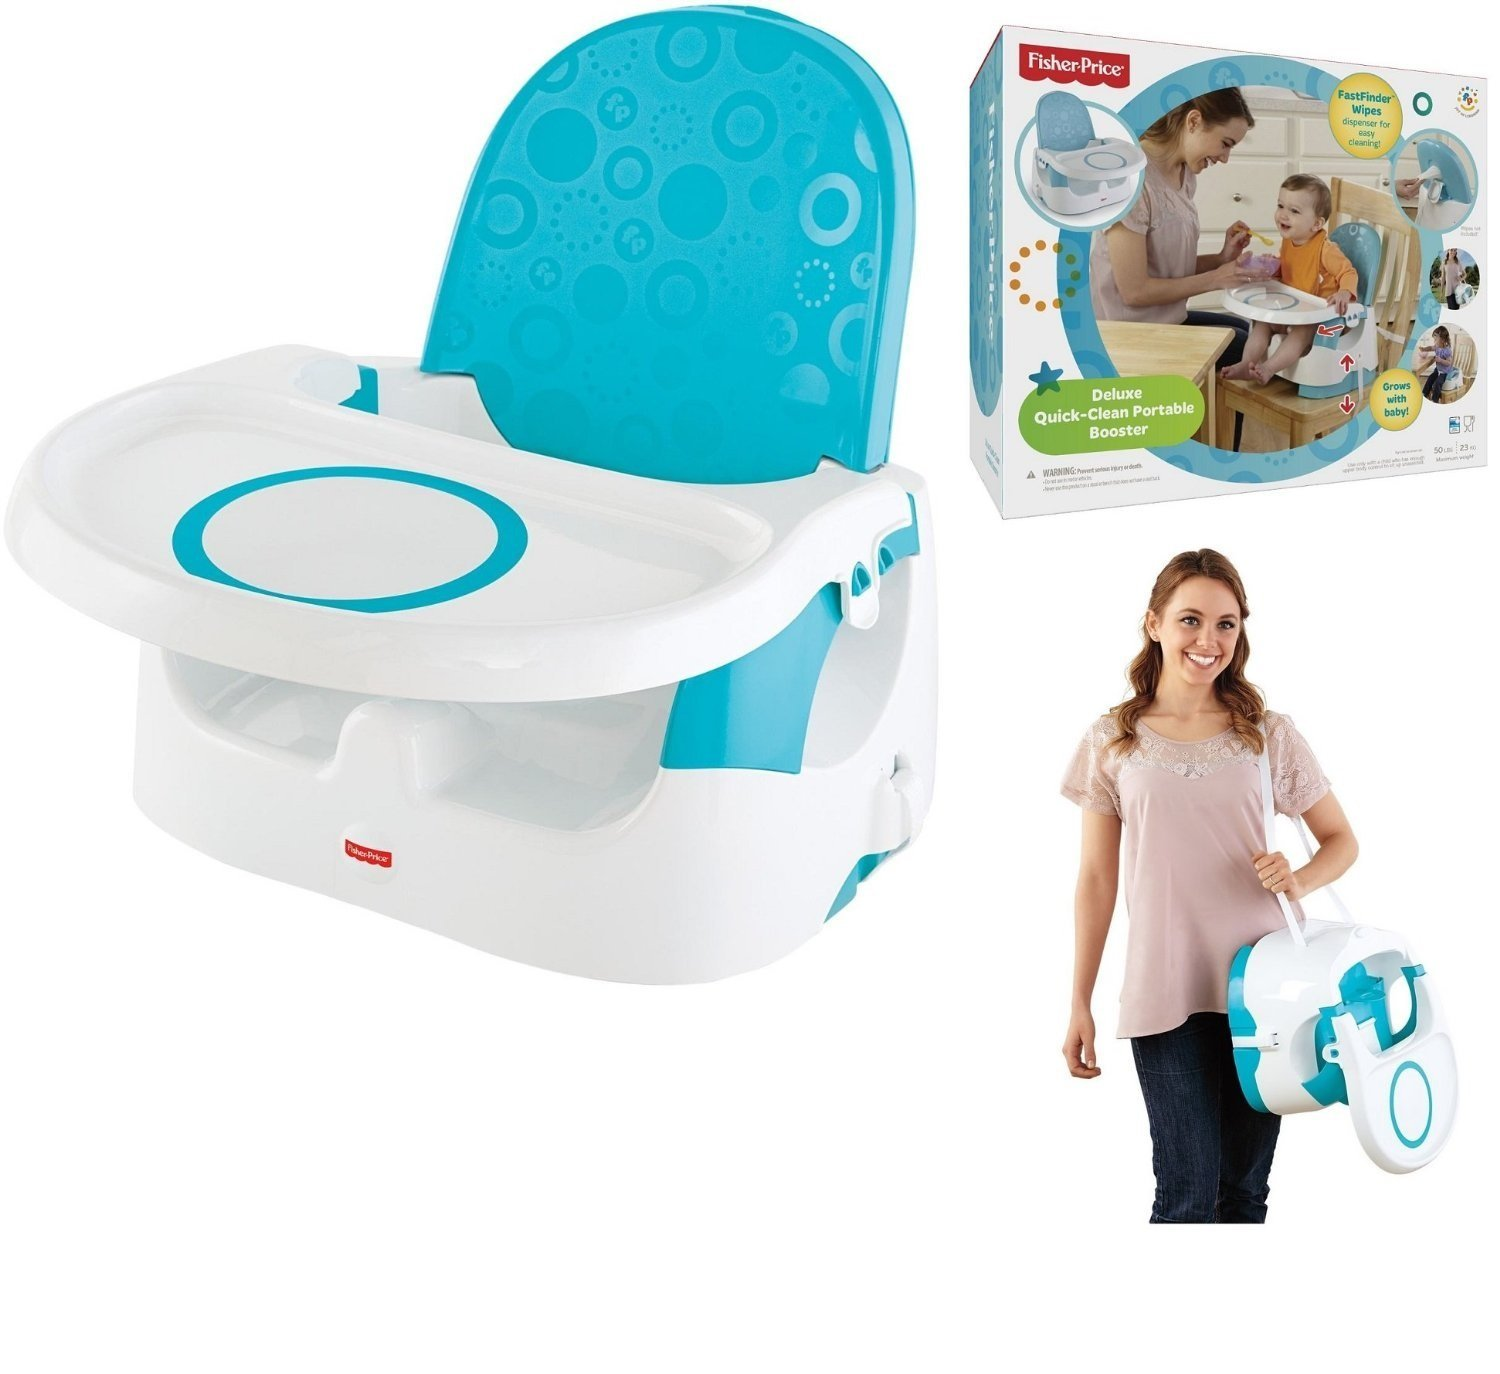 Fisher Price® Deluxe Quick-Clean Portable Booster Seat for Child Kid Baby Infant Toddler with Fastfinder™ Wipes Dispenser and Super Grip Spot Fisher Price®